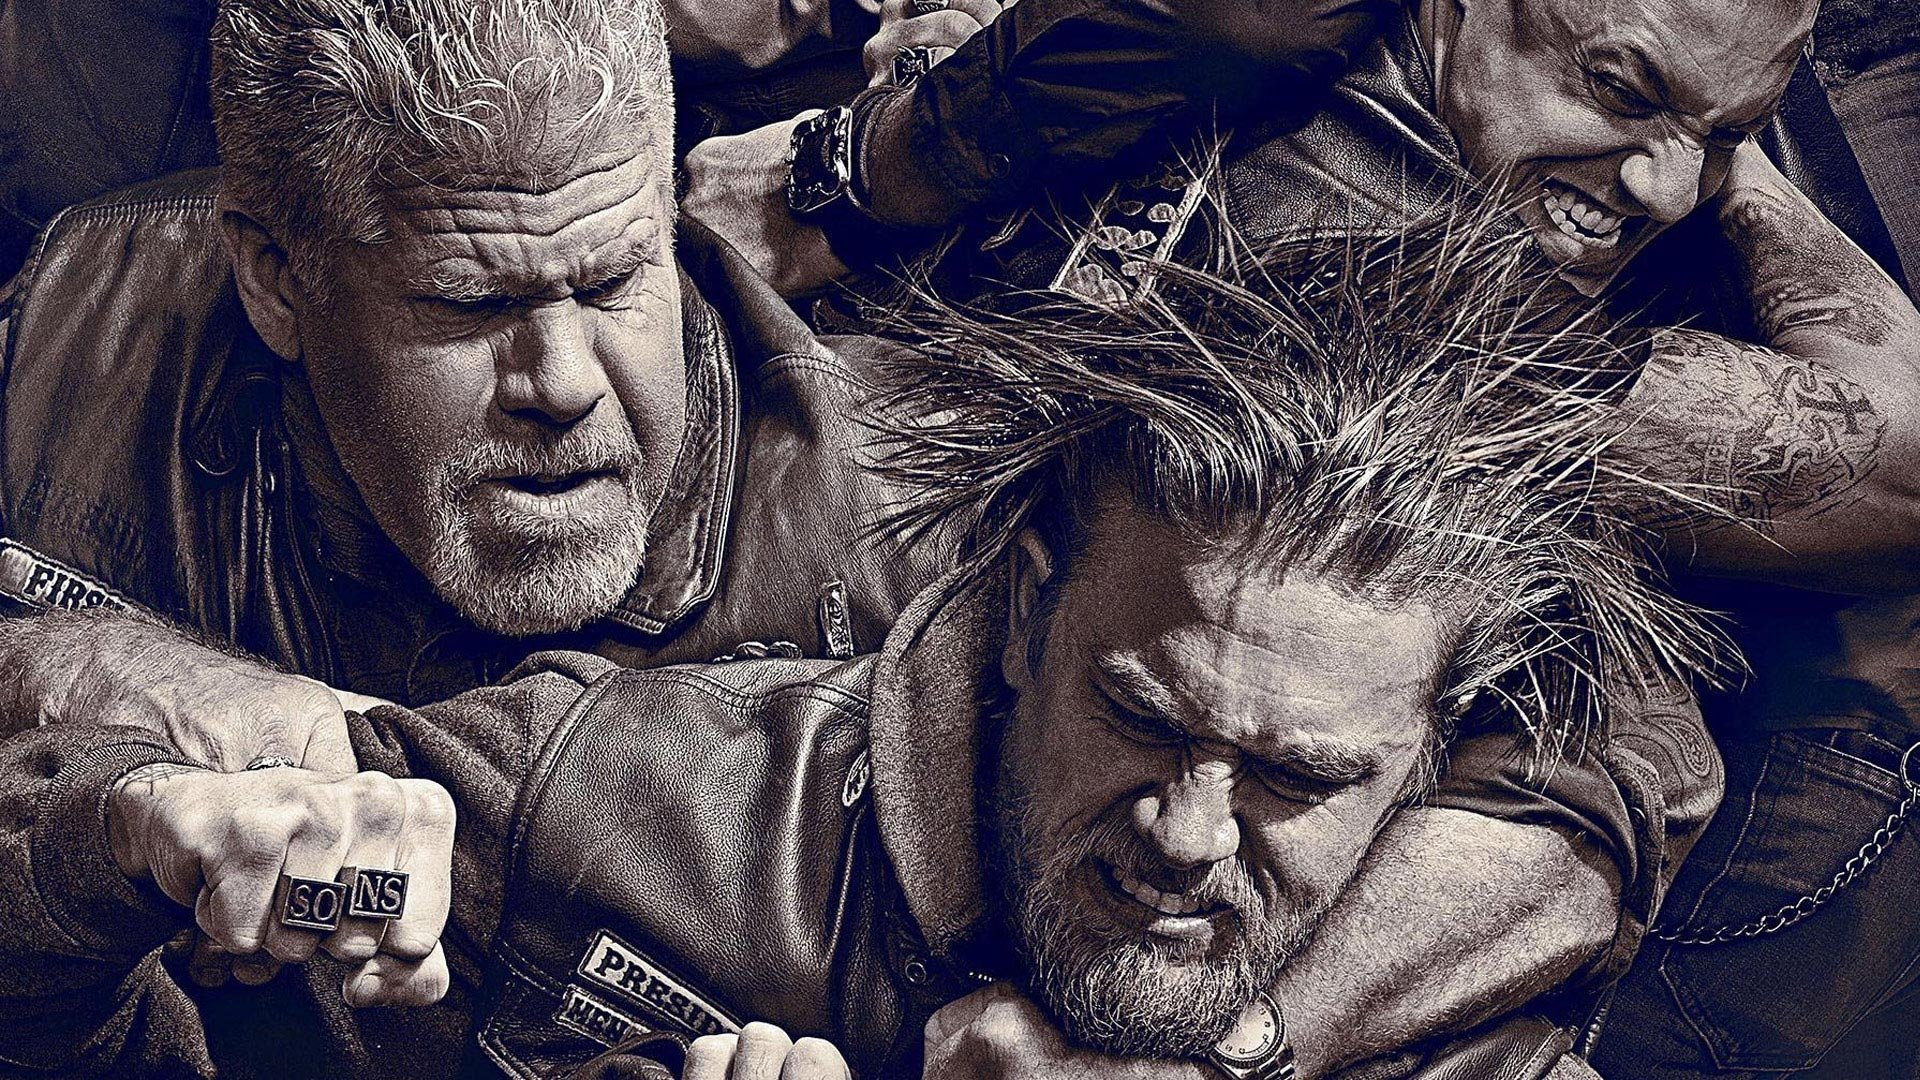 Free Download Sons Of Anarchy Wallpaper Id 187652 Hd 1080p For Desktop